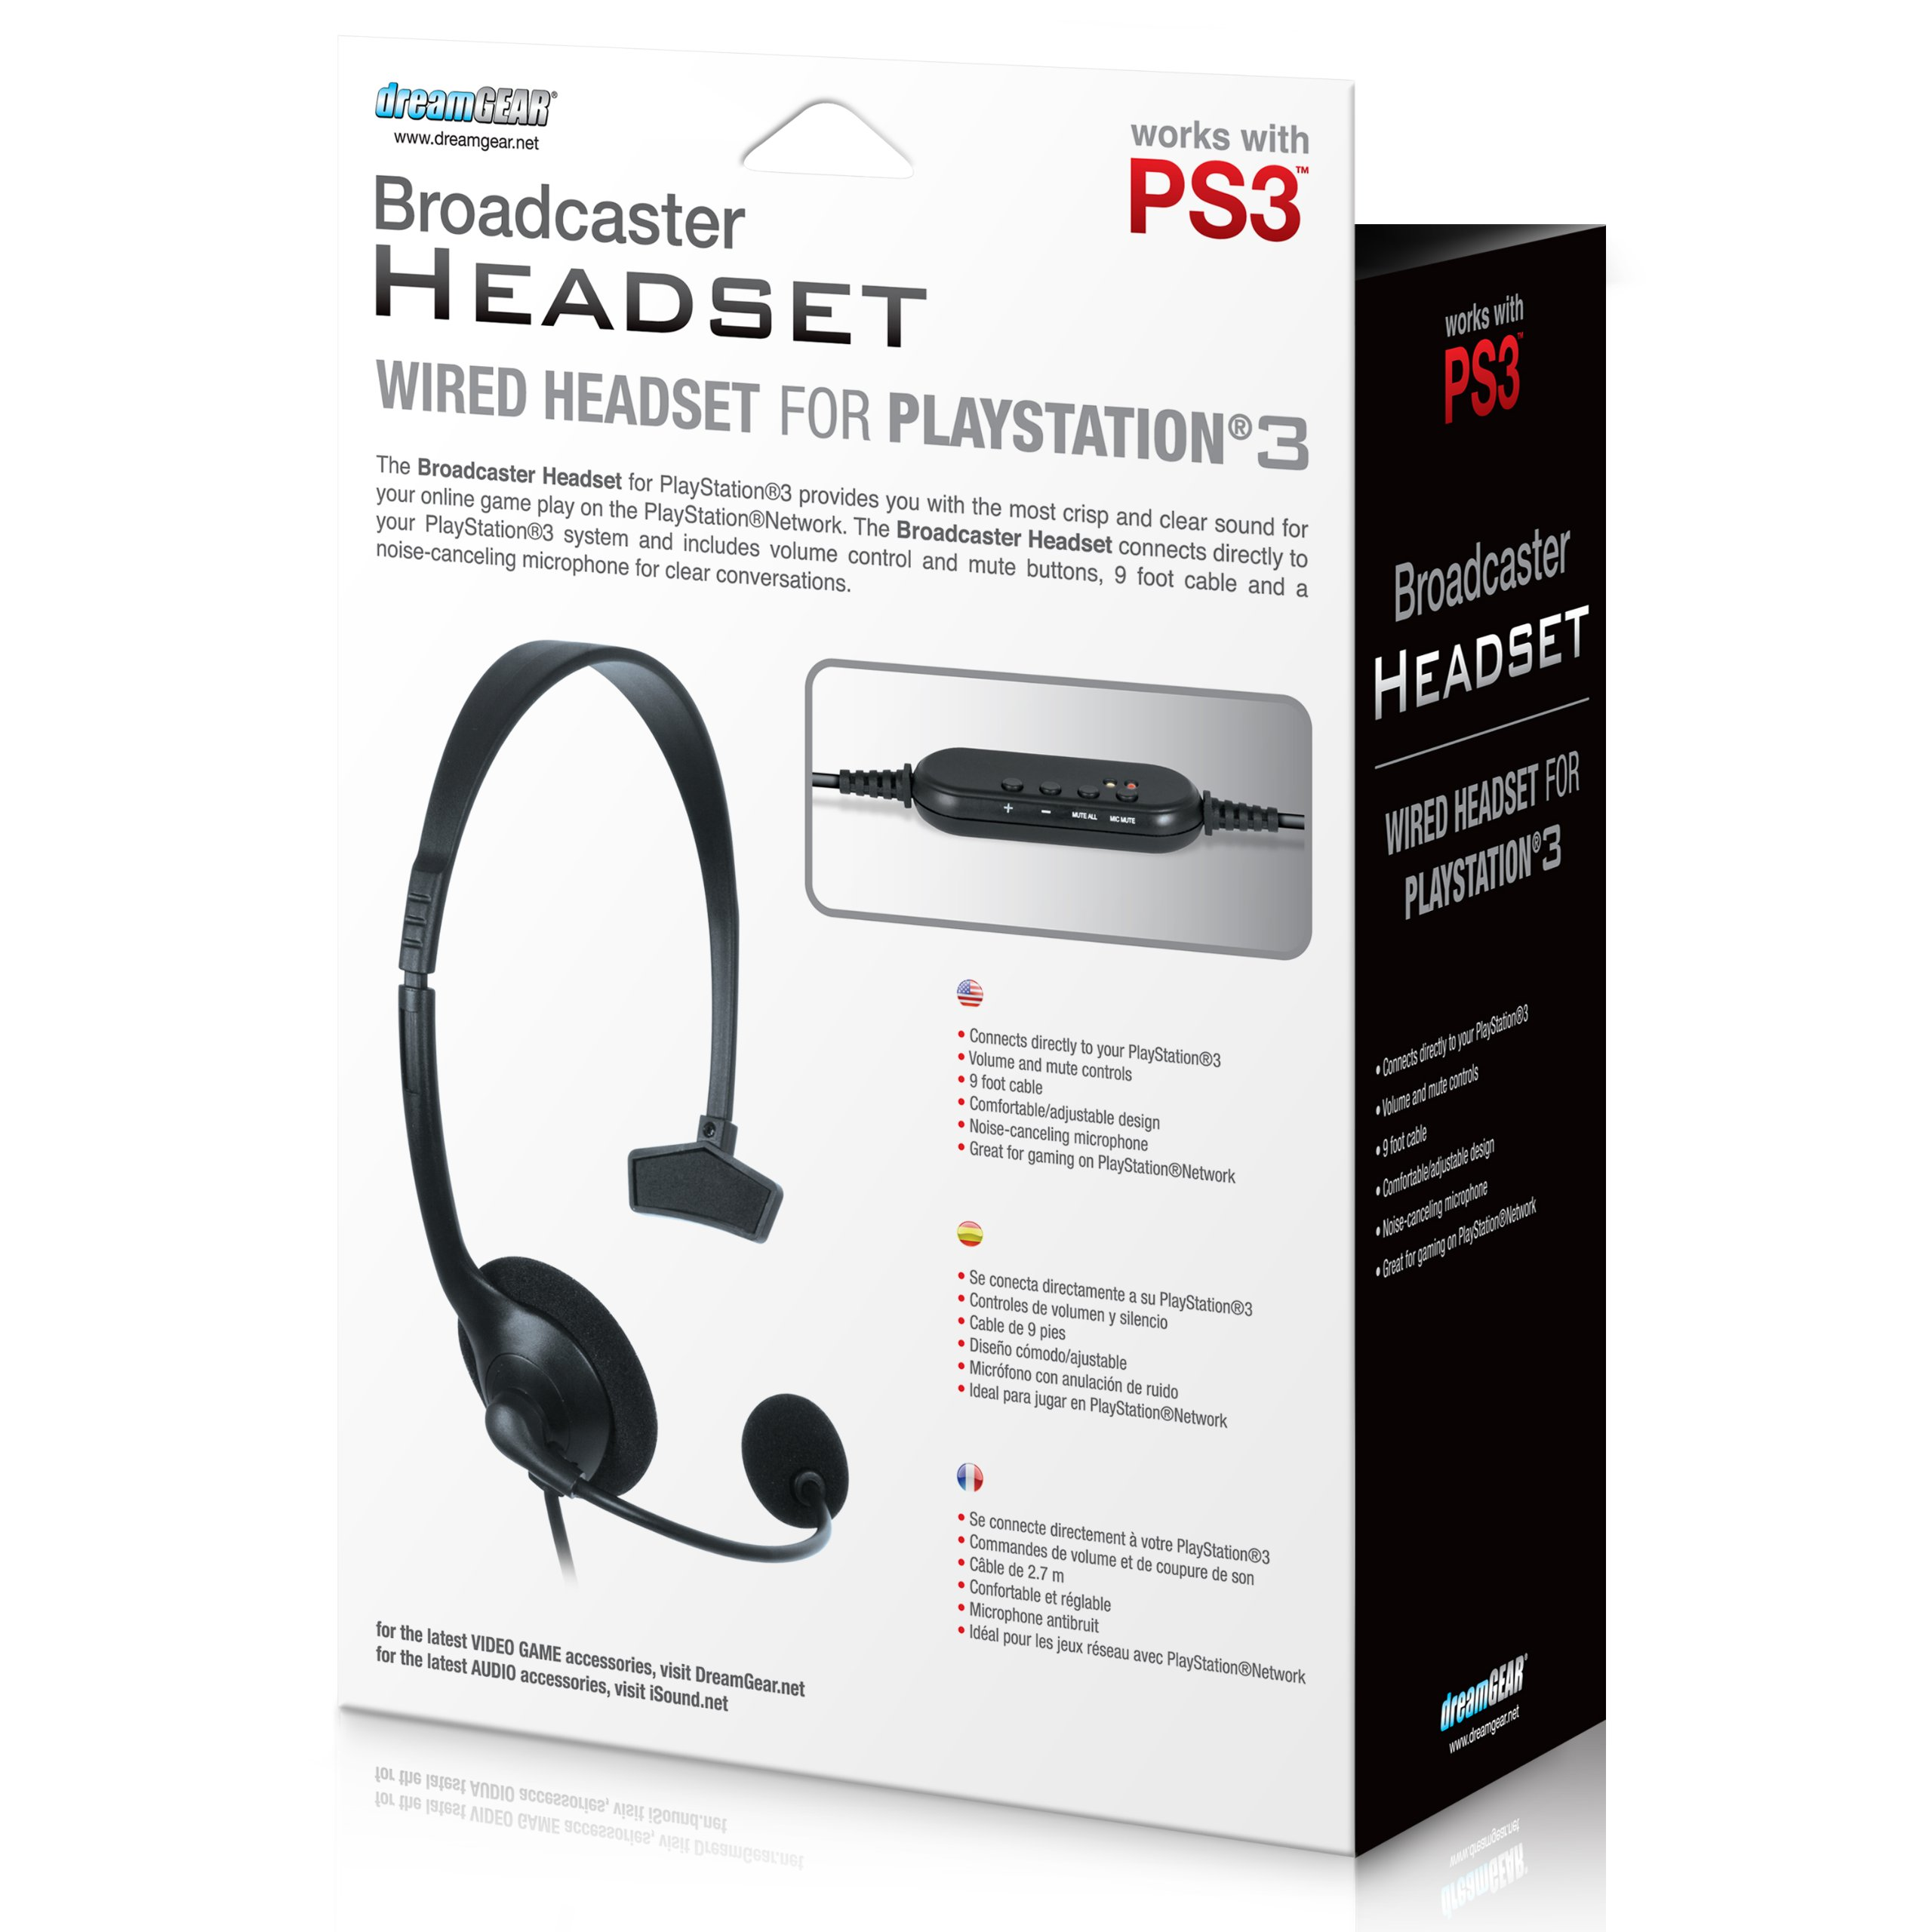 PlayStation 3 Broadcaster Headset by dreamGEAR